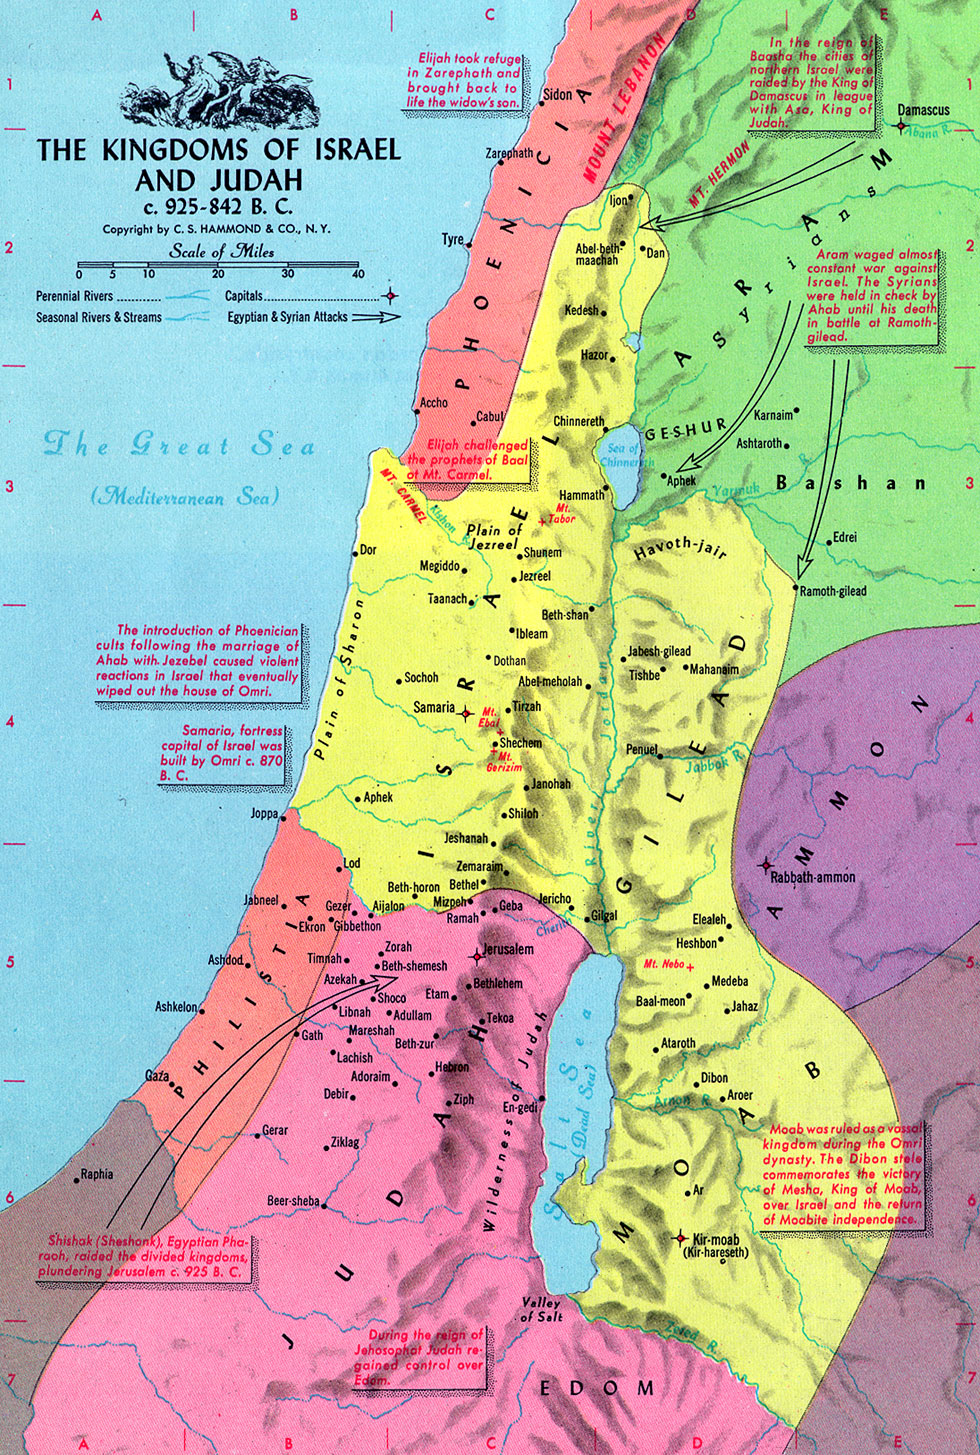 Map Divided Kingdom Israel Judah http://www.katapi.org.uk/Maps/DivKingdom925.htm